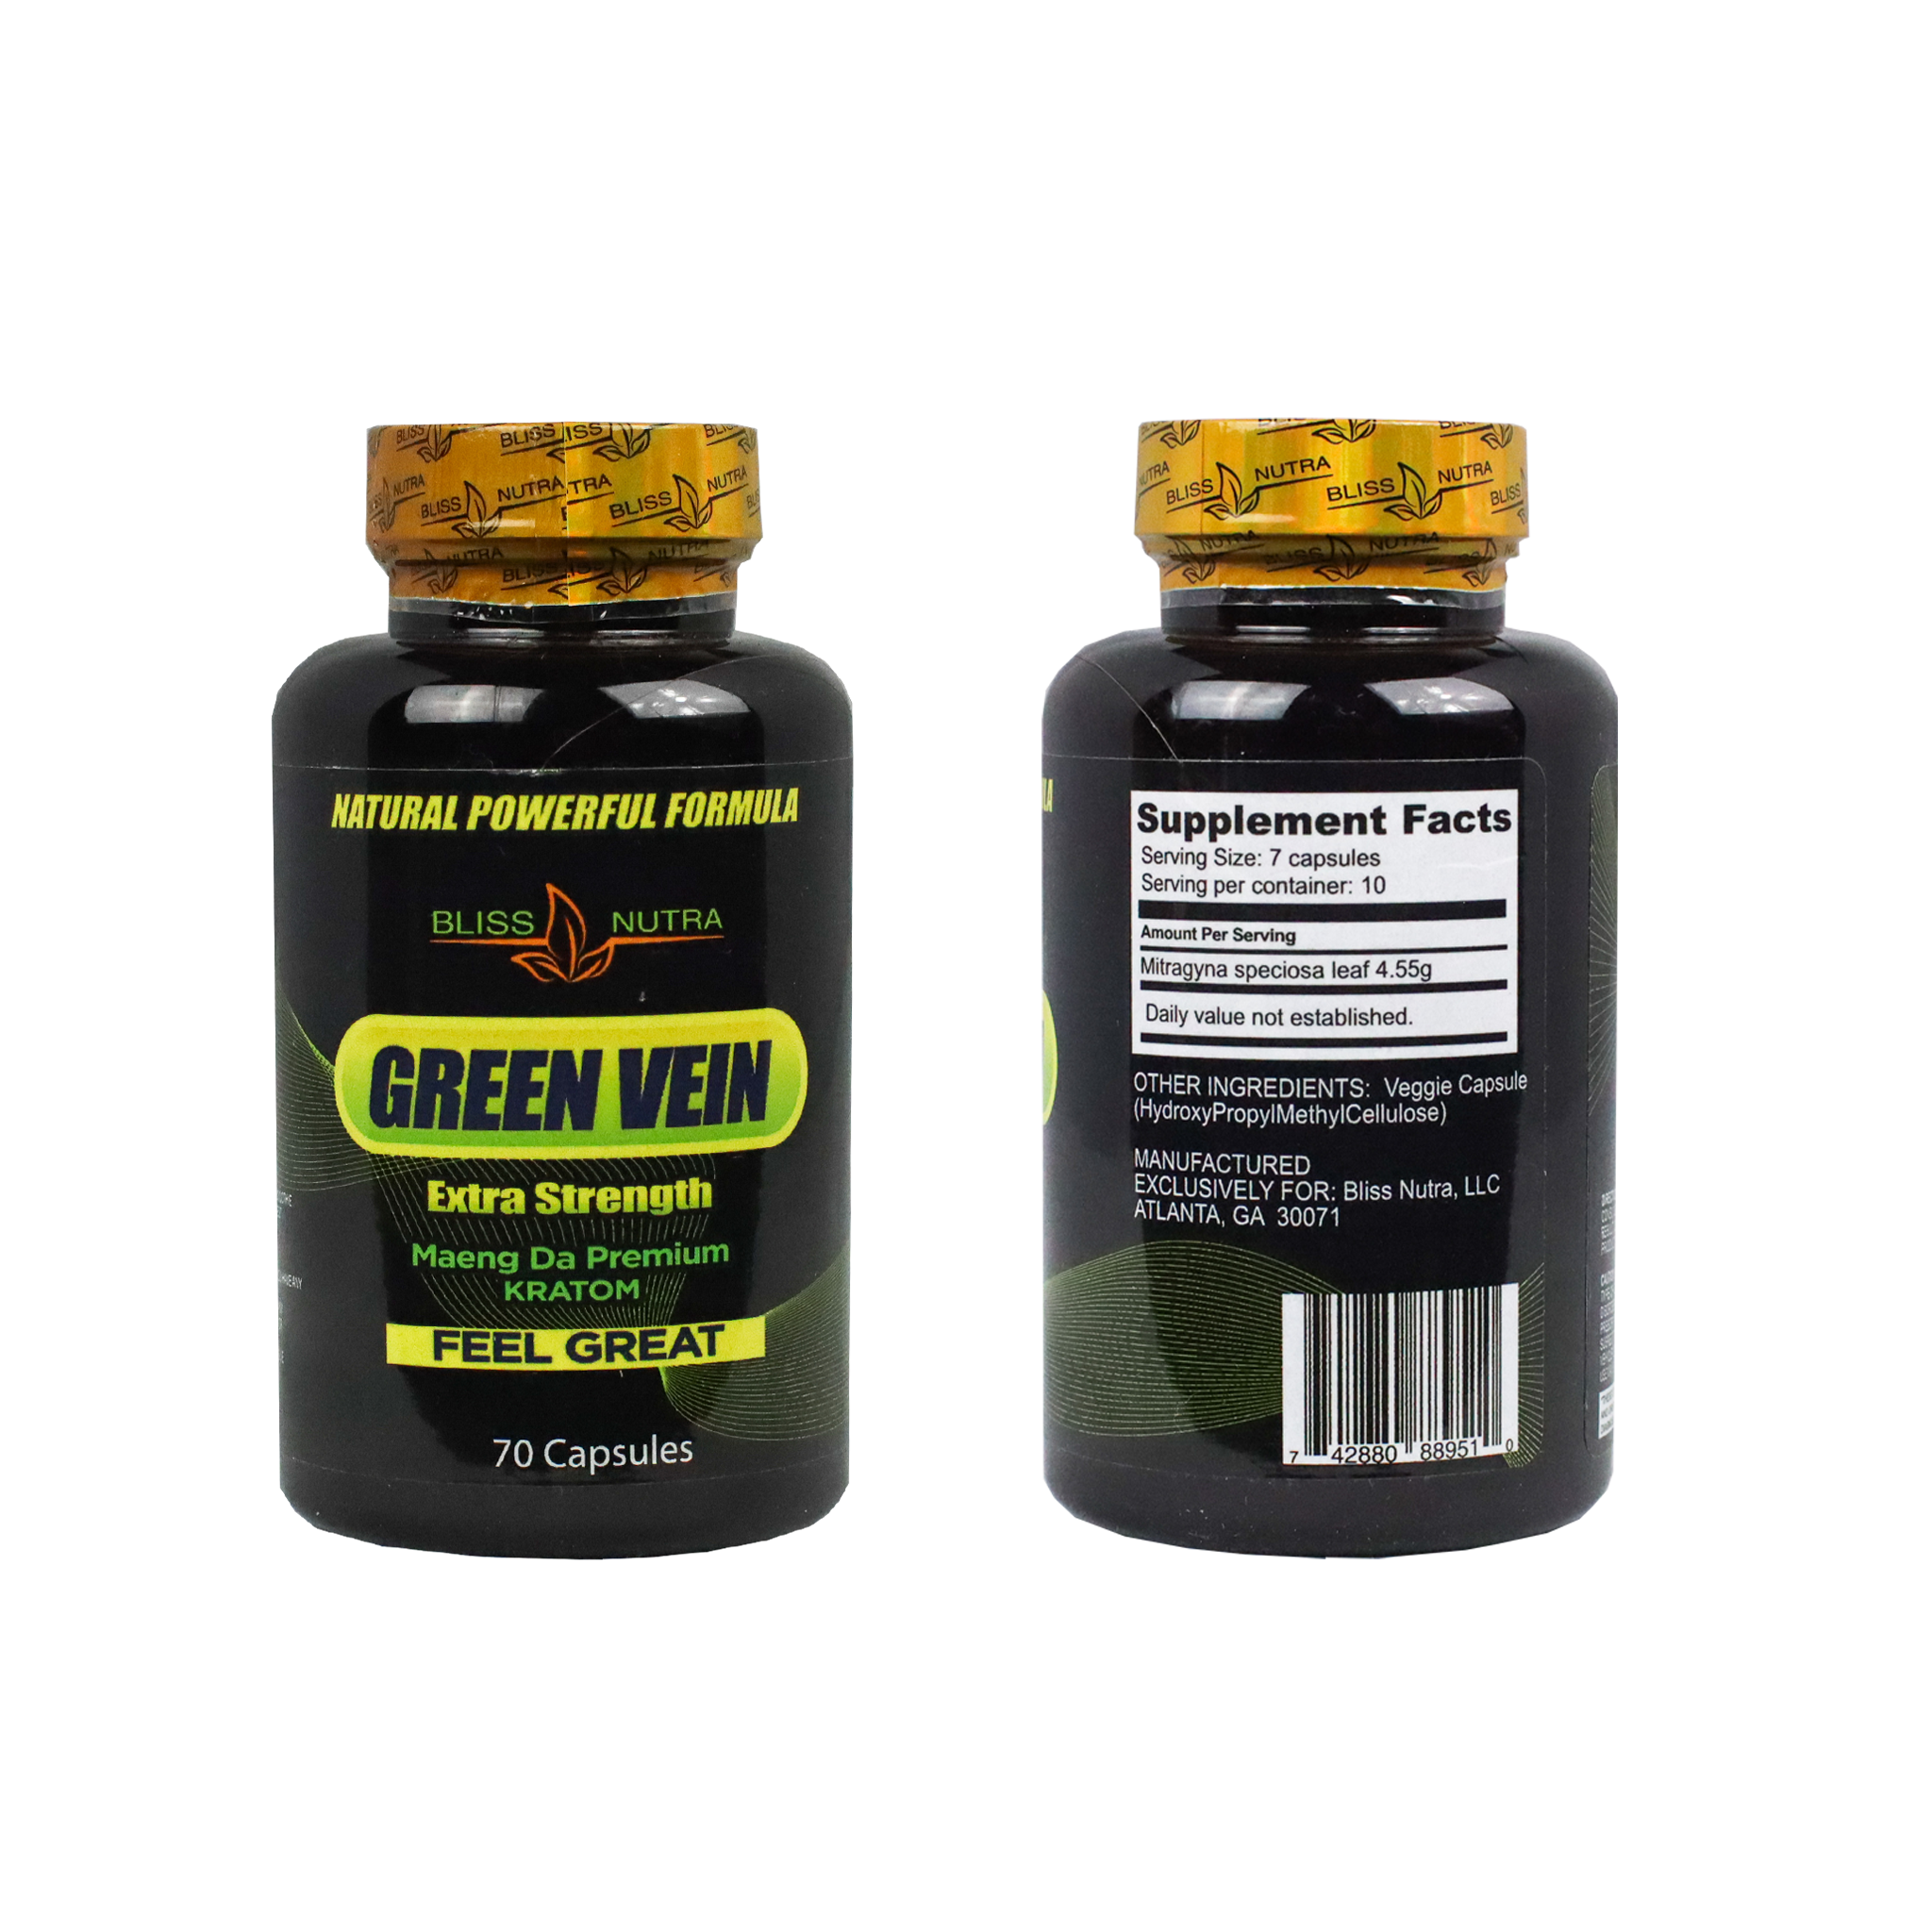 Green Vein Extra Strength Maeng Da Premium